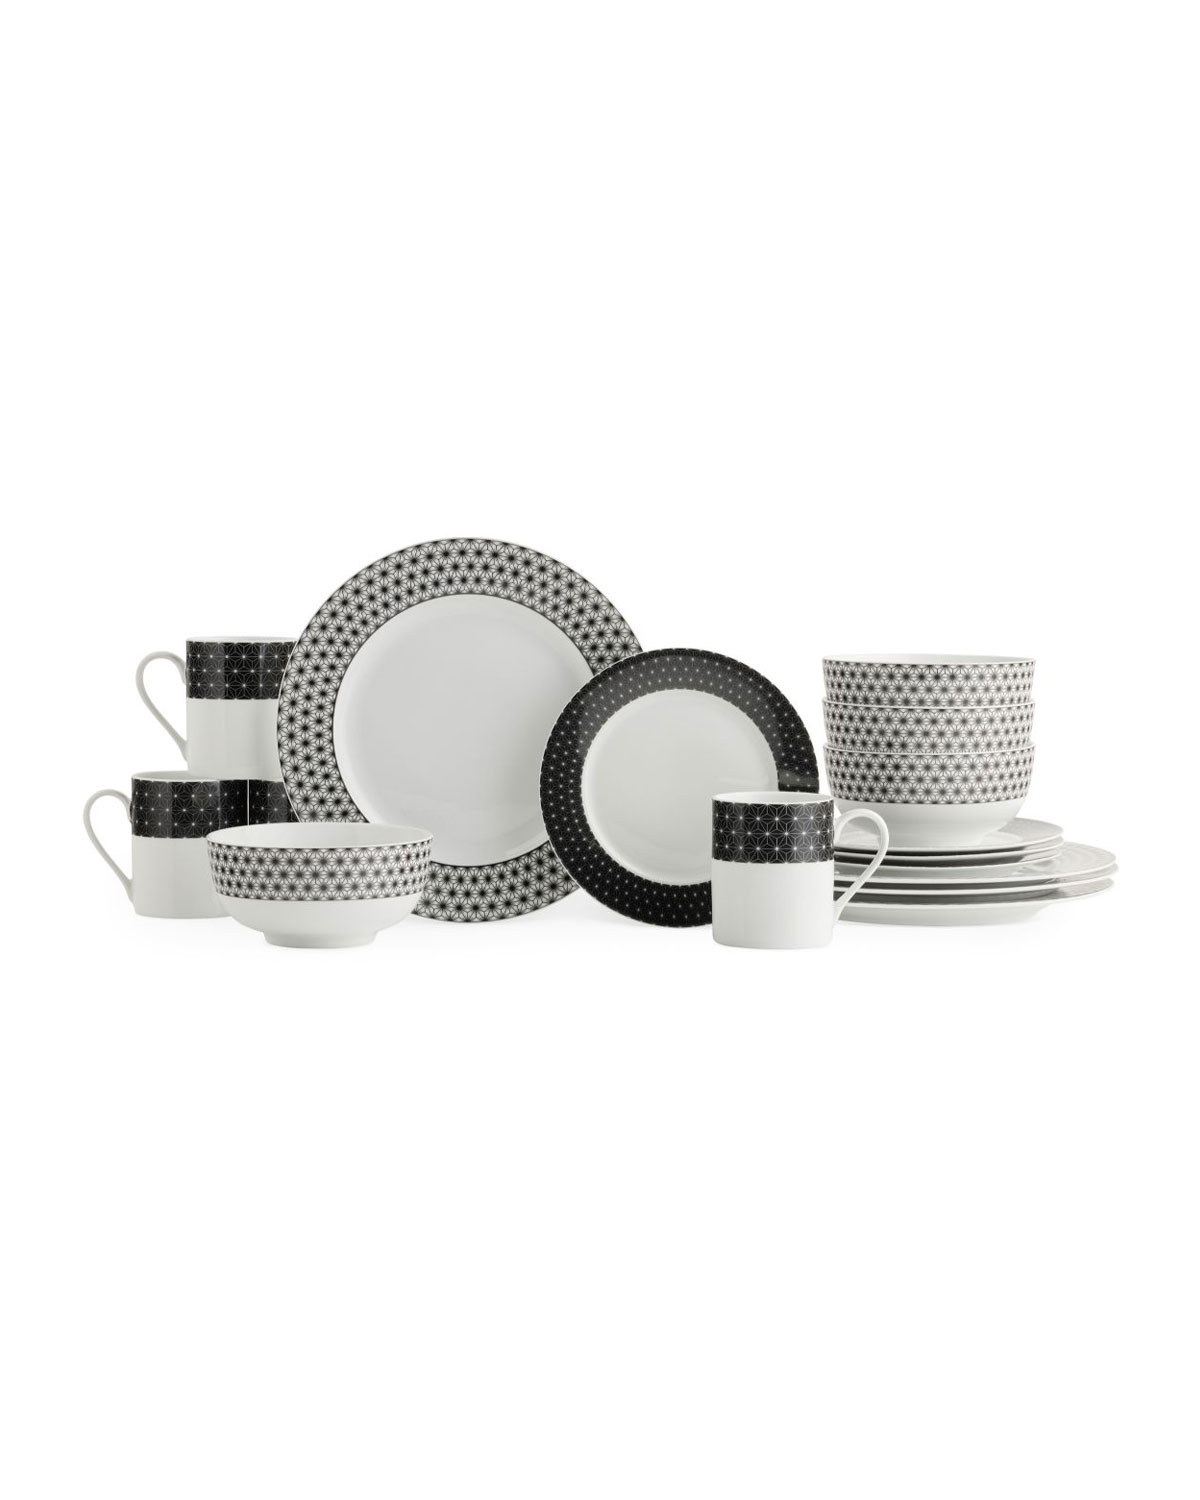 Spode Retrospect 16-Piece Dinnerware Set